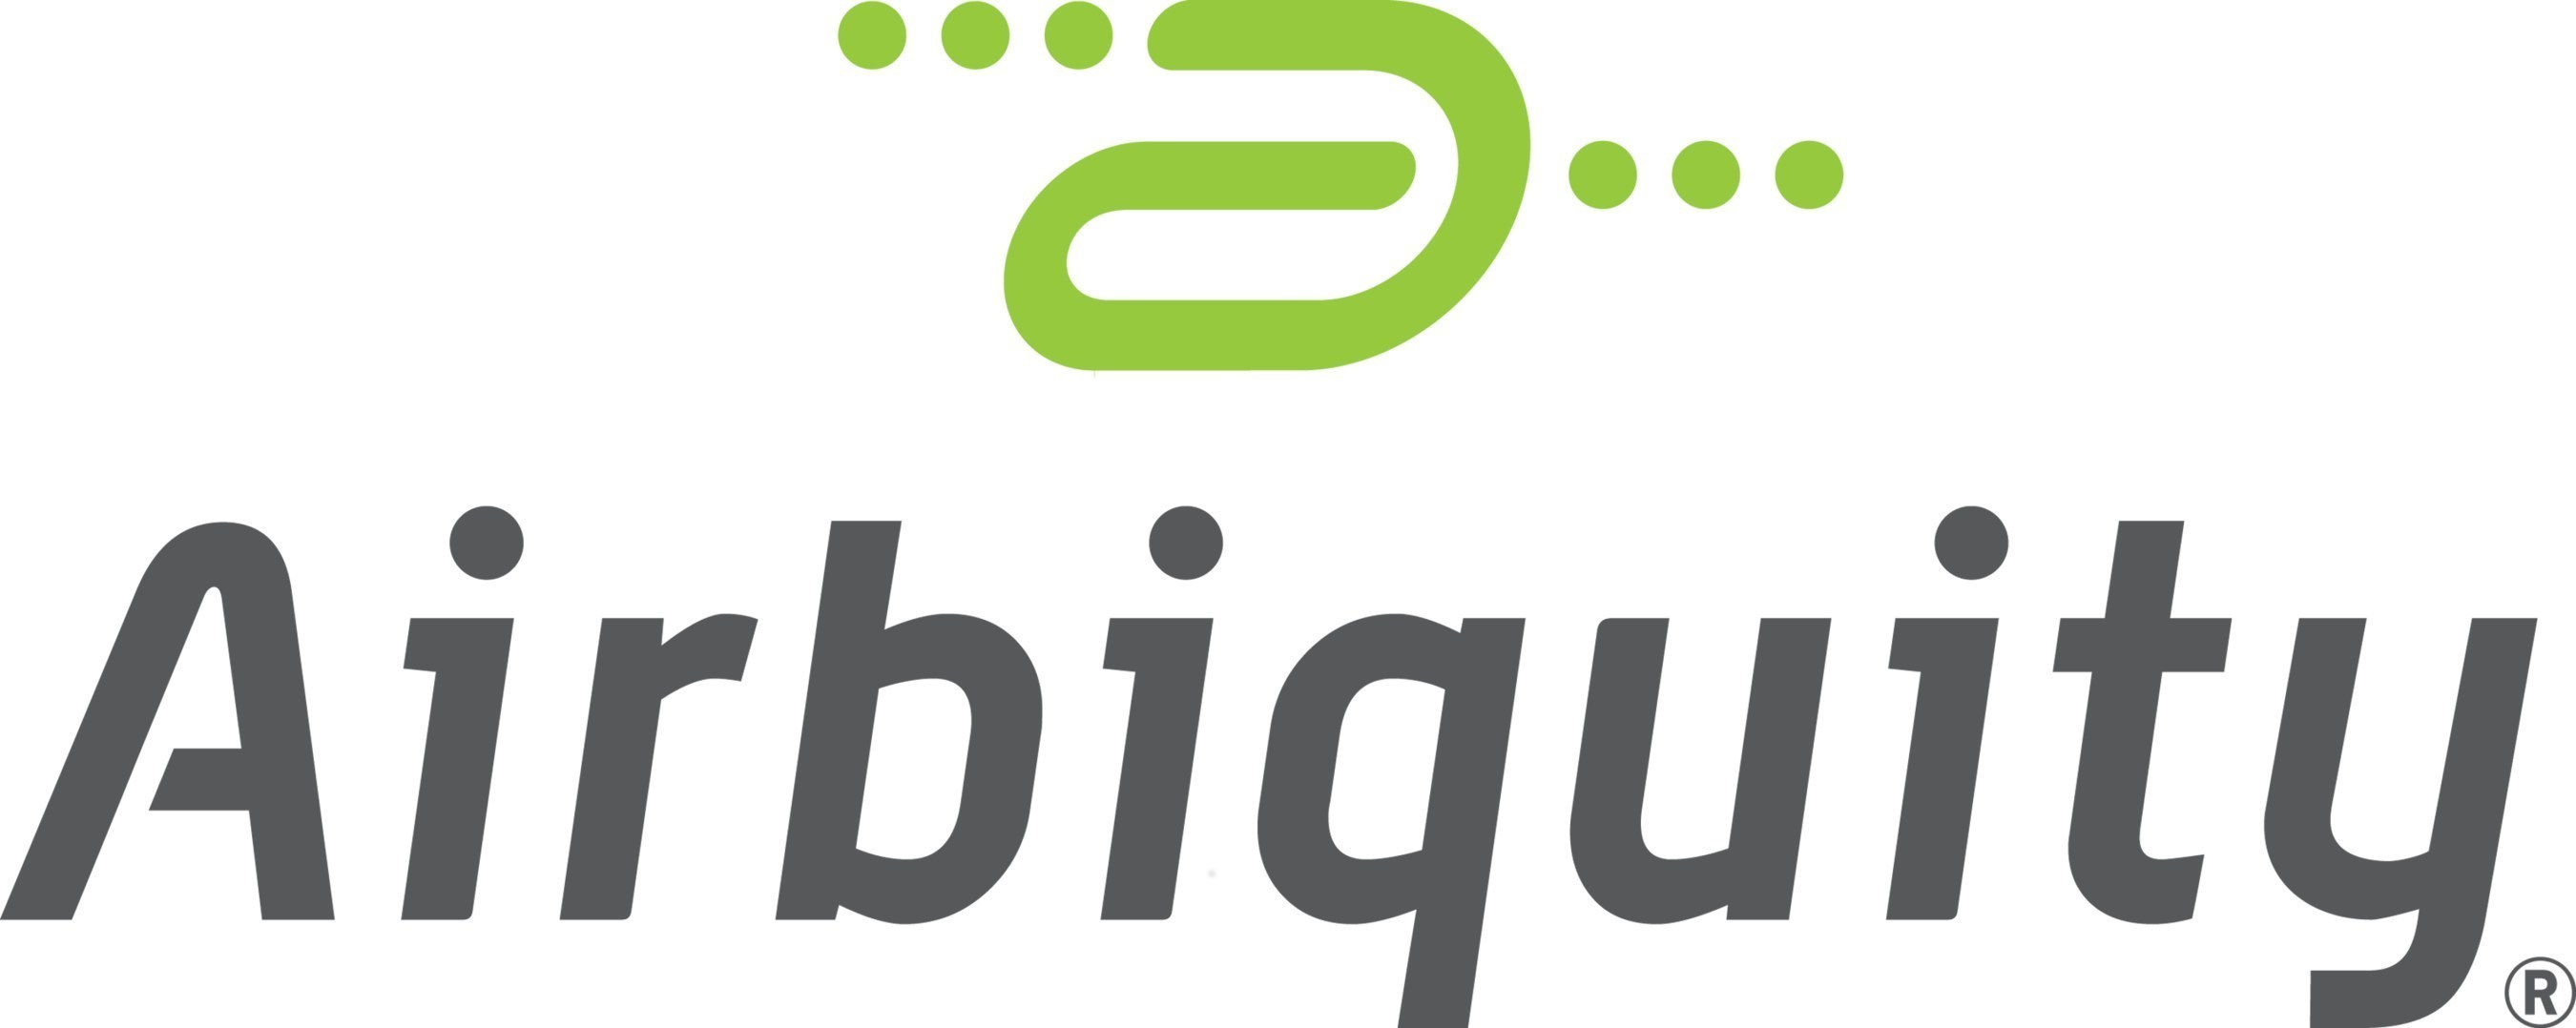 Airbiquity to Showcase Innovative Over-the-Air (OTA) Software & Data Management Solution for Connected Vehicles at TU-Automotive Europe 2016